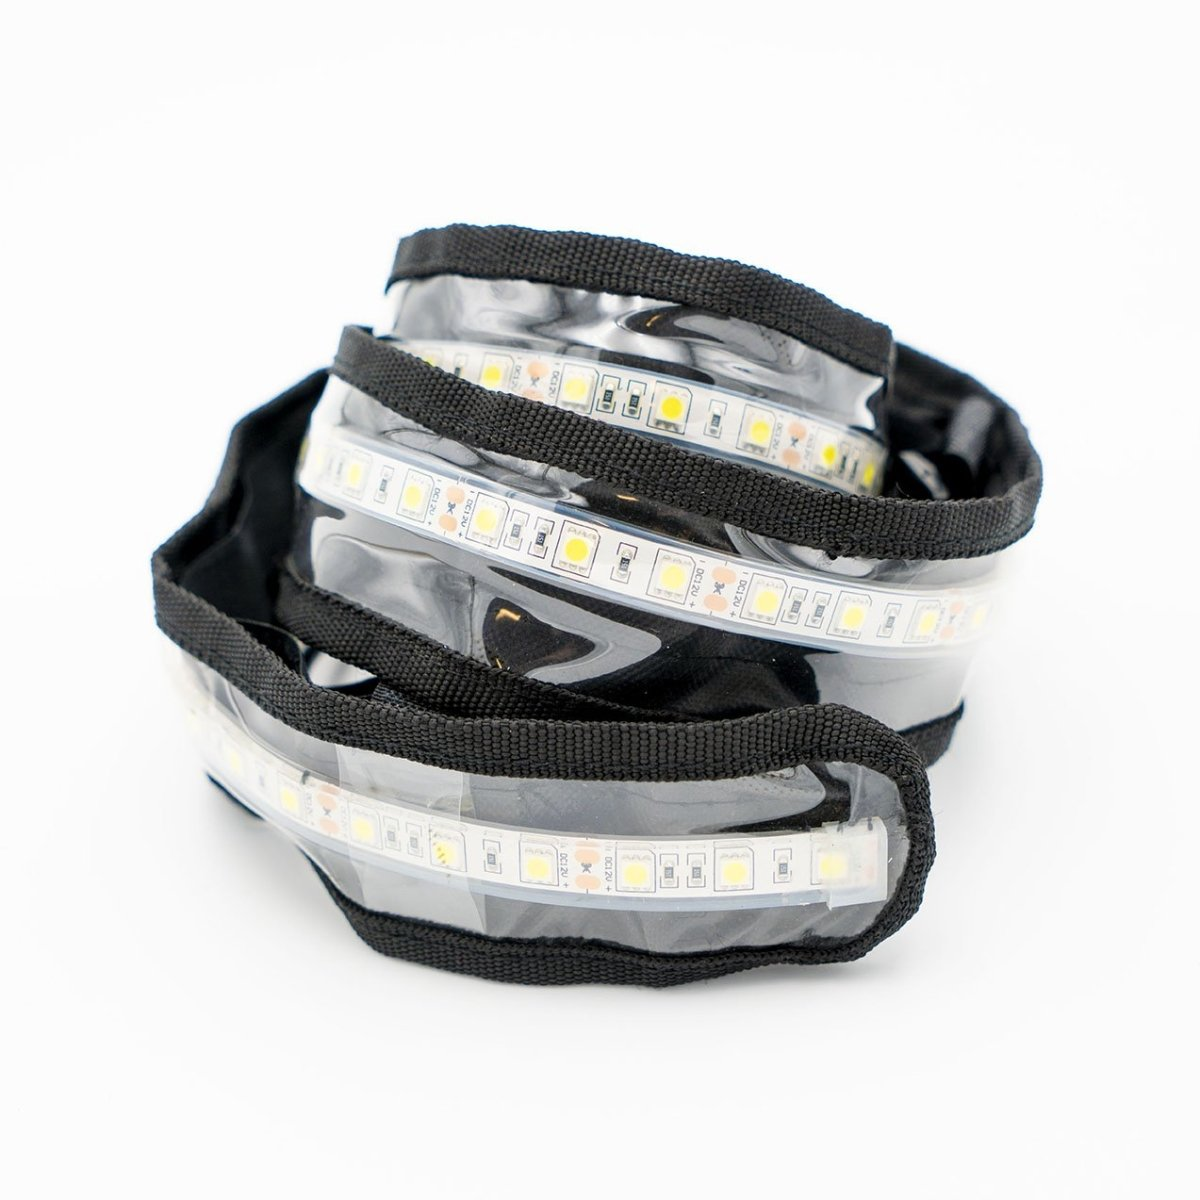 Tuff Stuff® LED Light Strip 12v for Roof Top Tent - Tuff Stuff Overland - LED Light Strip